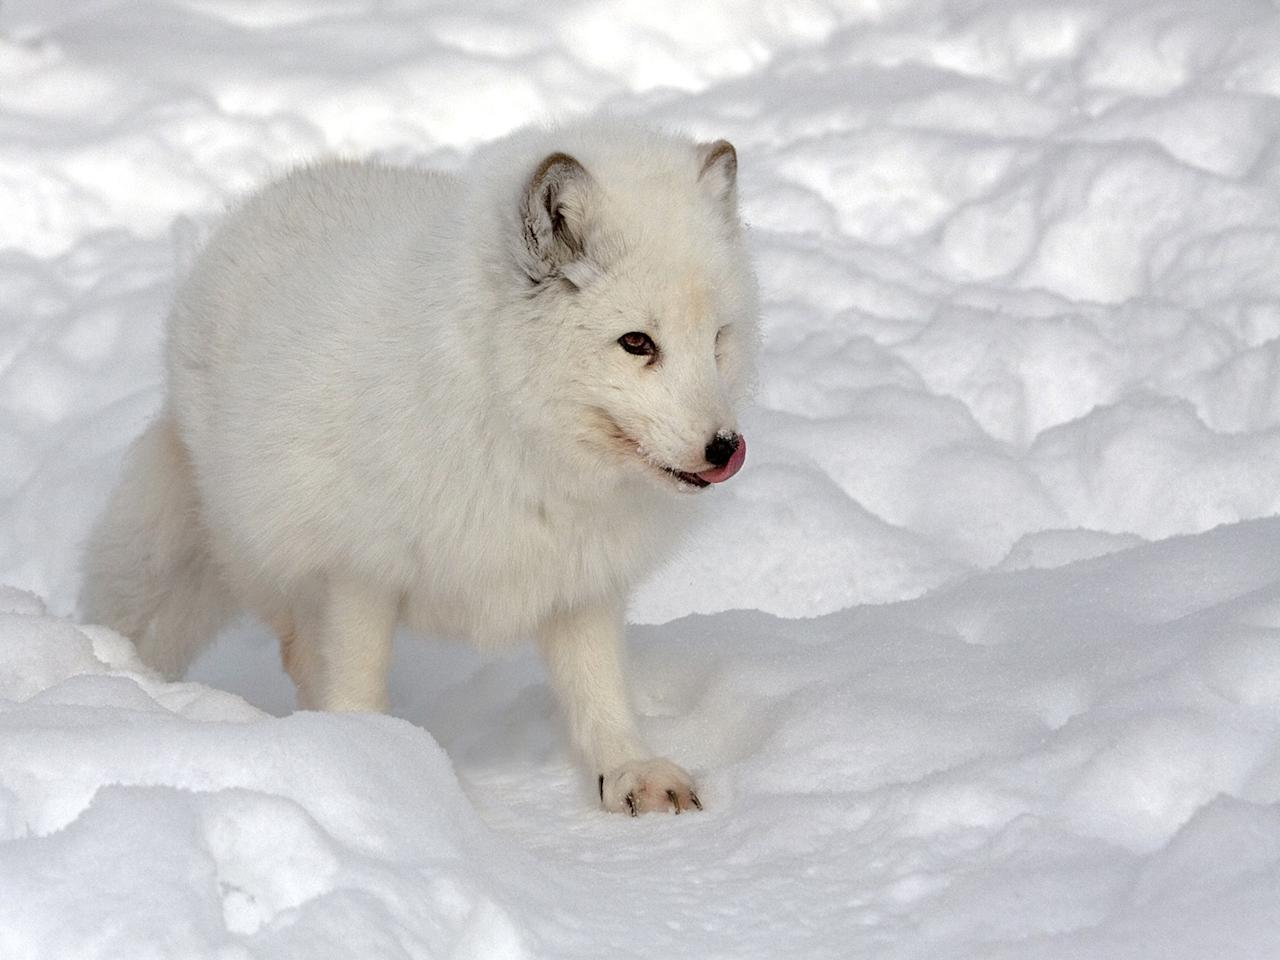 <p>A snow fox. These stunning images capture wildlife in its natural habitats as part of a new exhibition. Wildlife From Around the World, will include 72 pictures and runs for a month later this year at Patching Art Centre at Calverton </p>